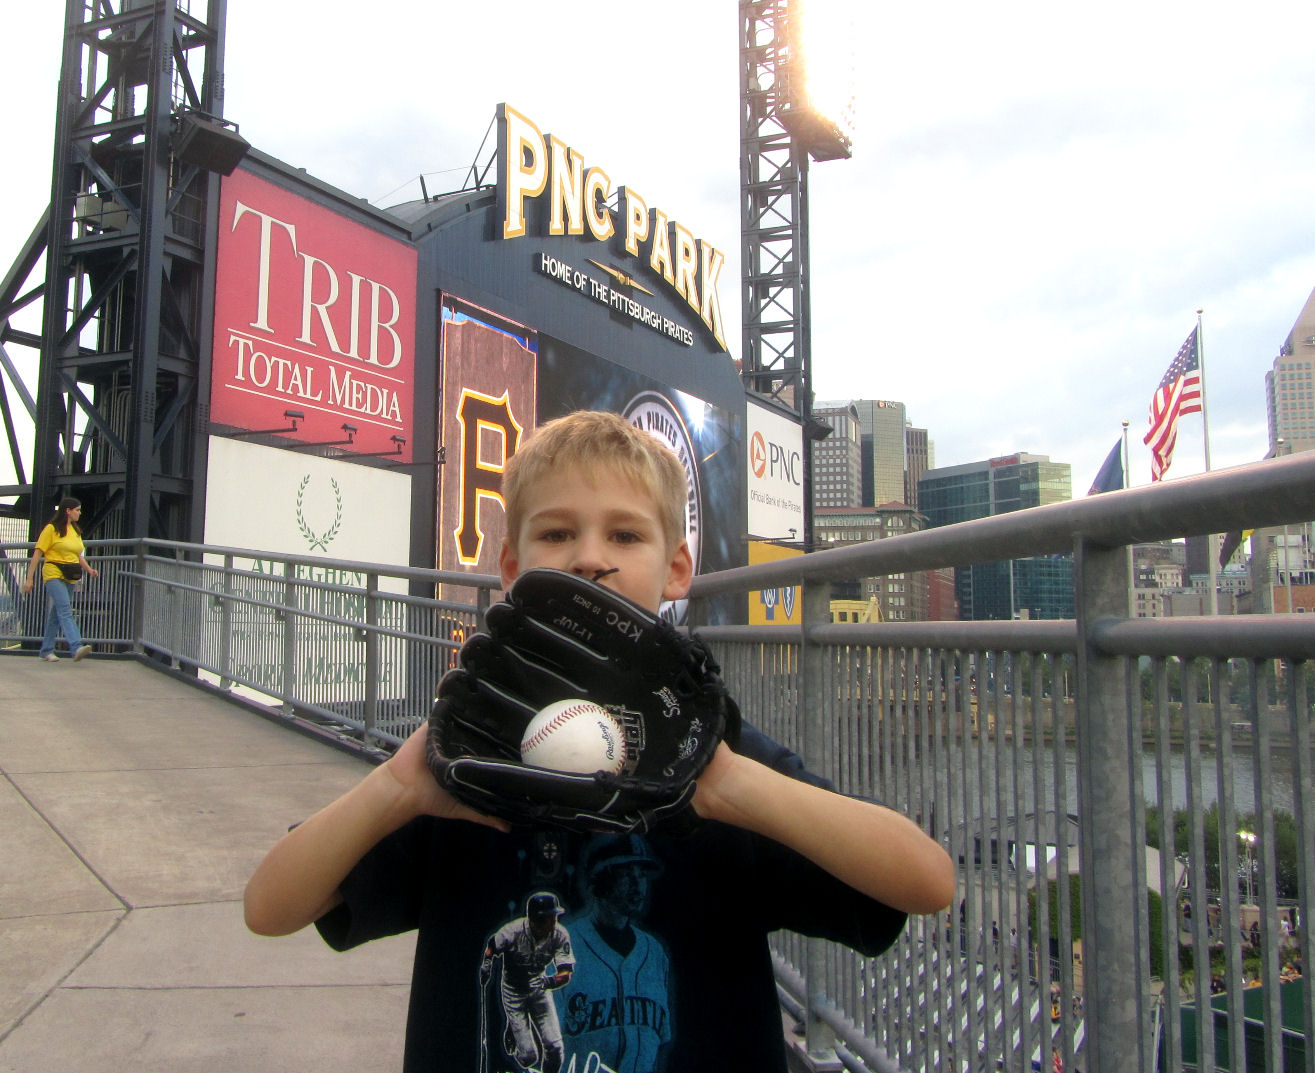 We headed up the ramp and got Tim 39s PNC Park bonus picture for the